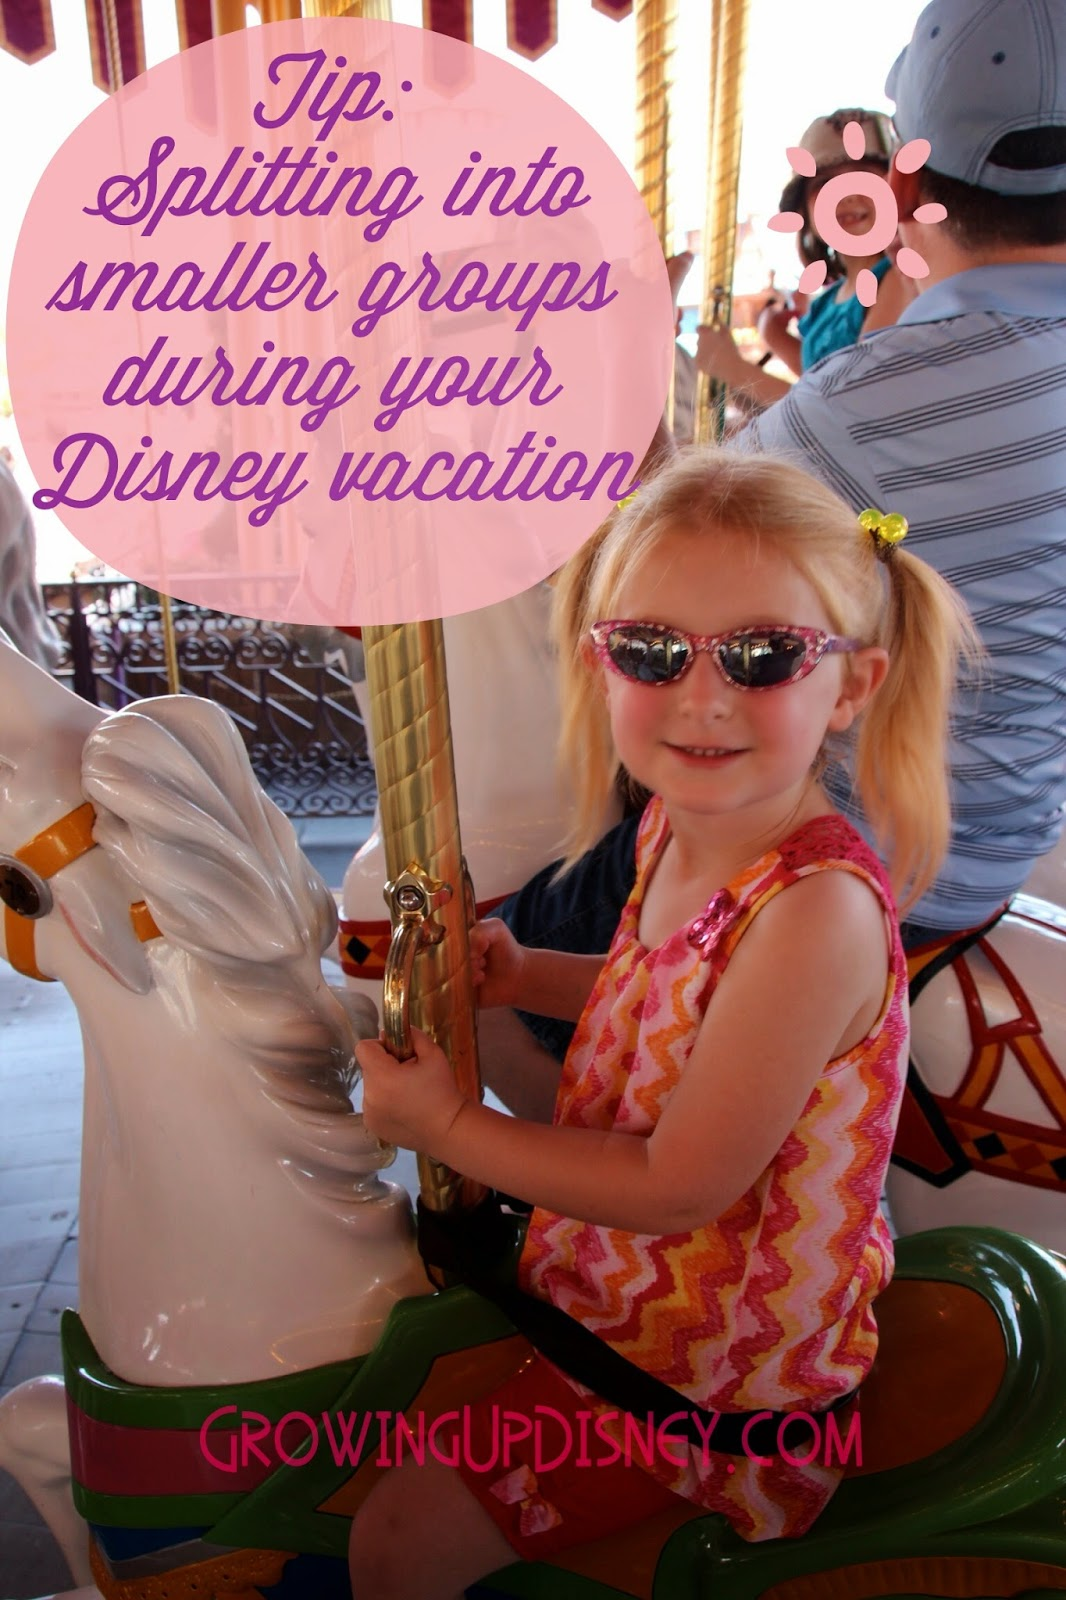 If you are traveling to Walt Disney World with anyone other than yourself, take note of this tip....split up!  While you planned a lovely group vacation, you'll enjoy it more if you don't try to keep up with your whole gang all of the time, unless you enjoy walking backward with a small flag.  Consider breaking into smaller groups and then meeting up later for a meal to discuss the fun you all had.